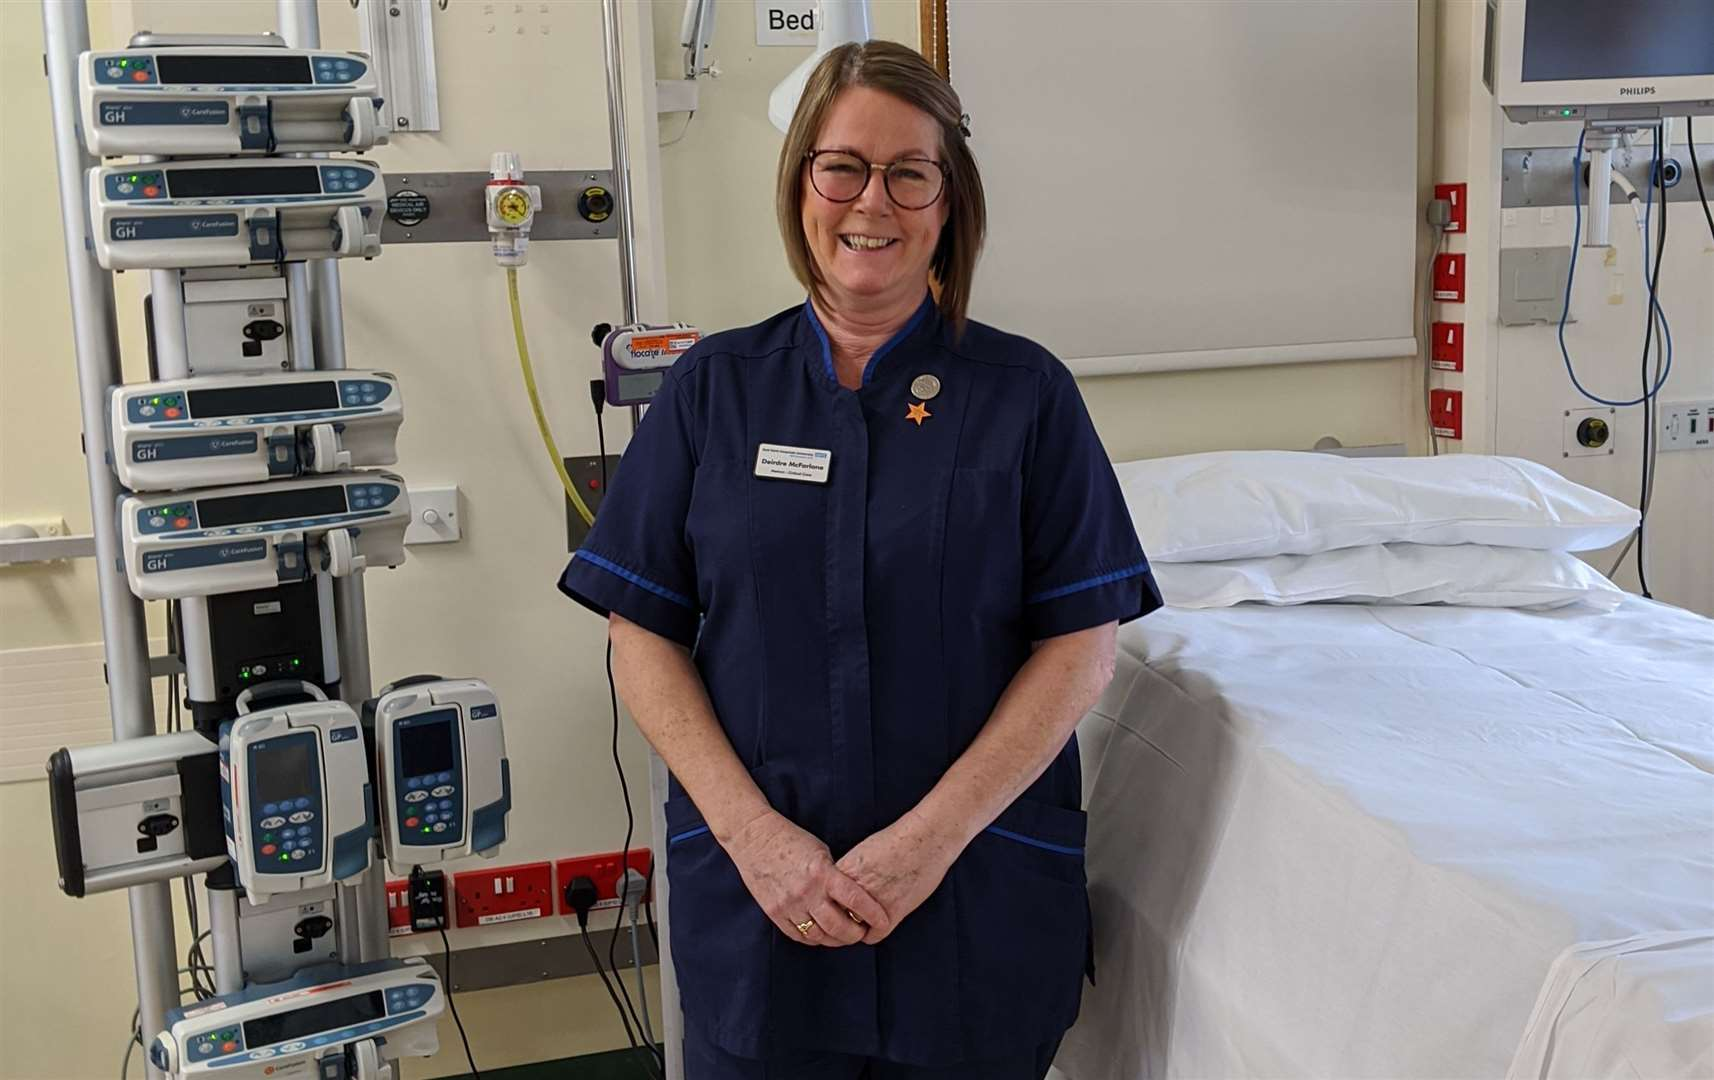 Deirdre McFarlane has worked in intensive care since 1998